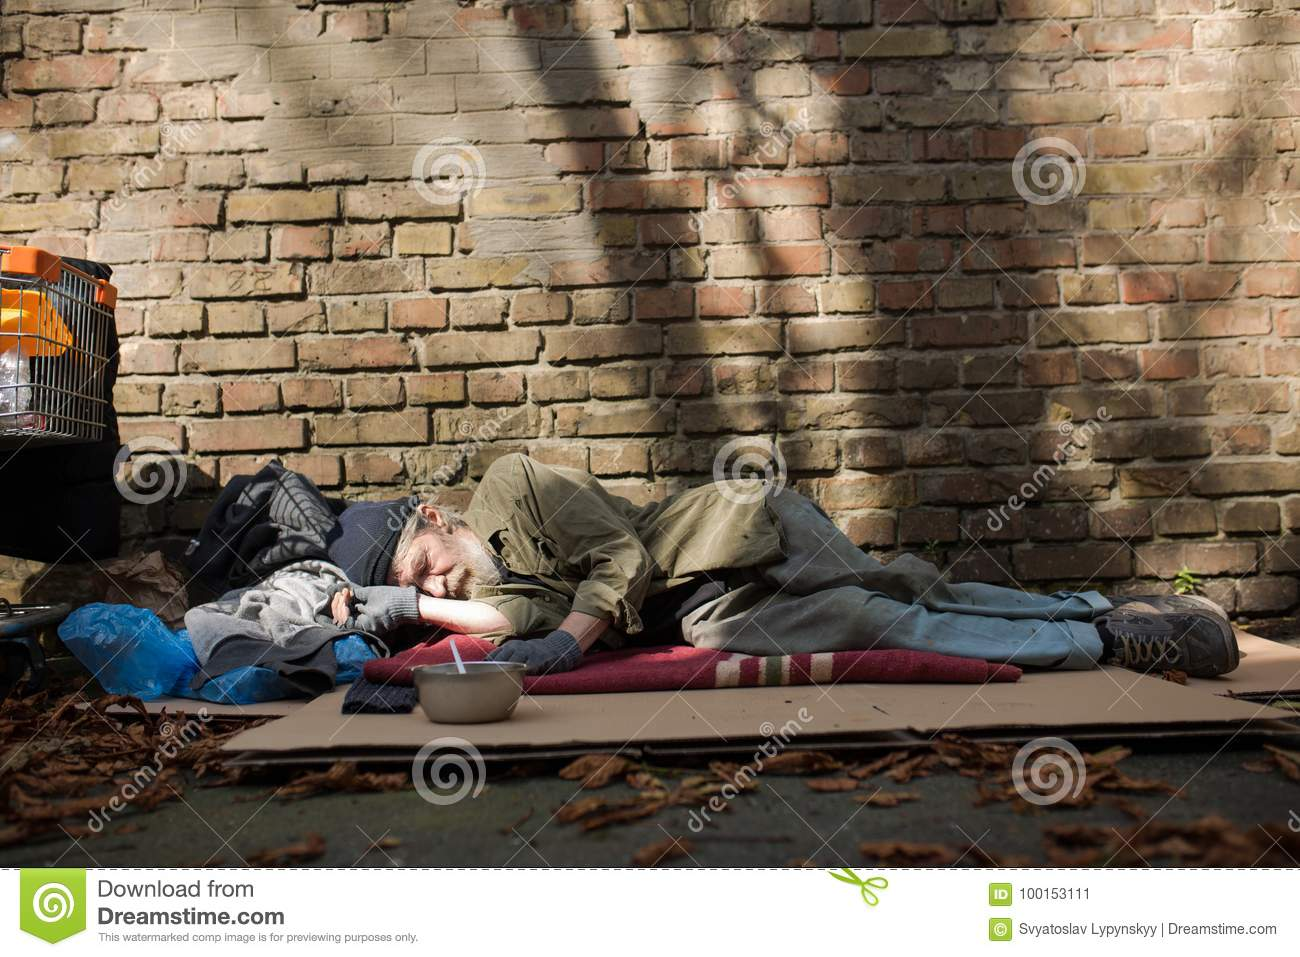 e90f49340f View Of Homeless Man Sleeping On Cardboard On The Ground. Stock ...